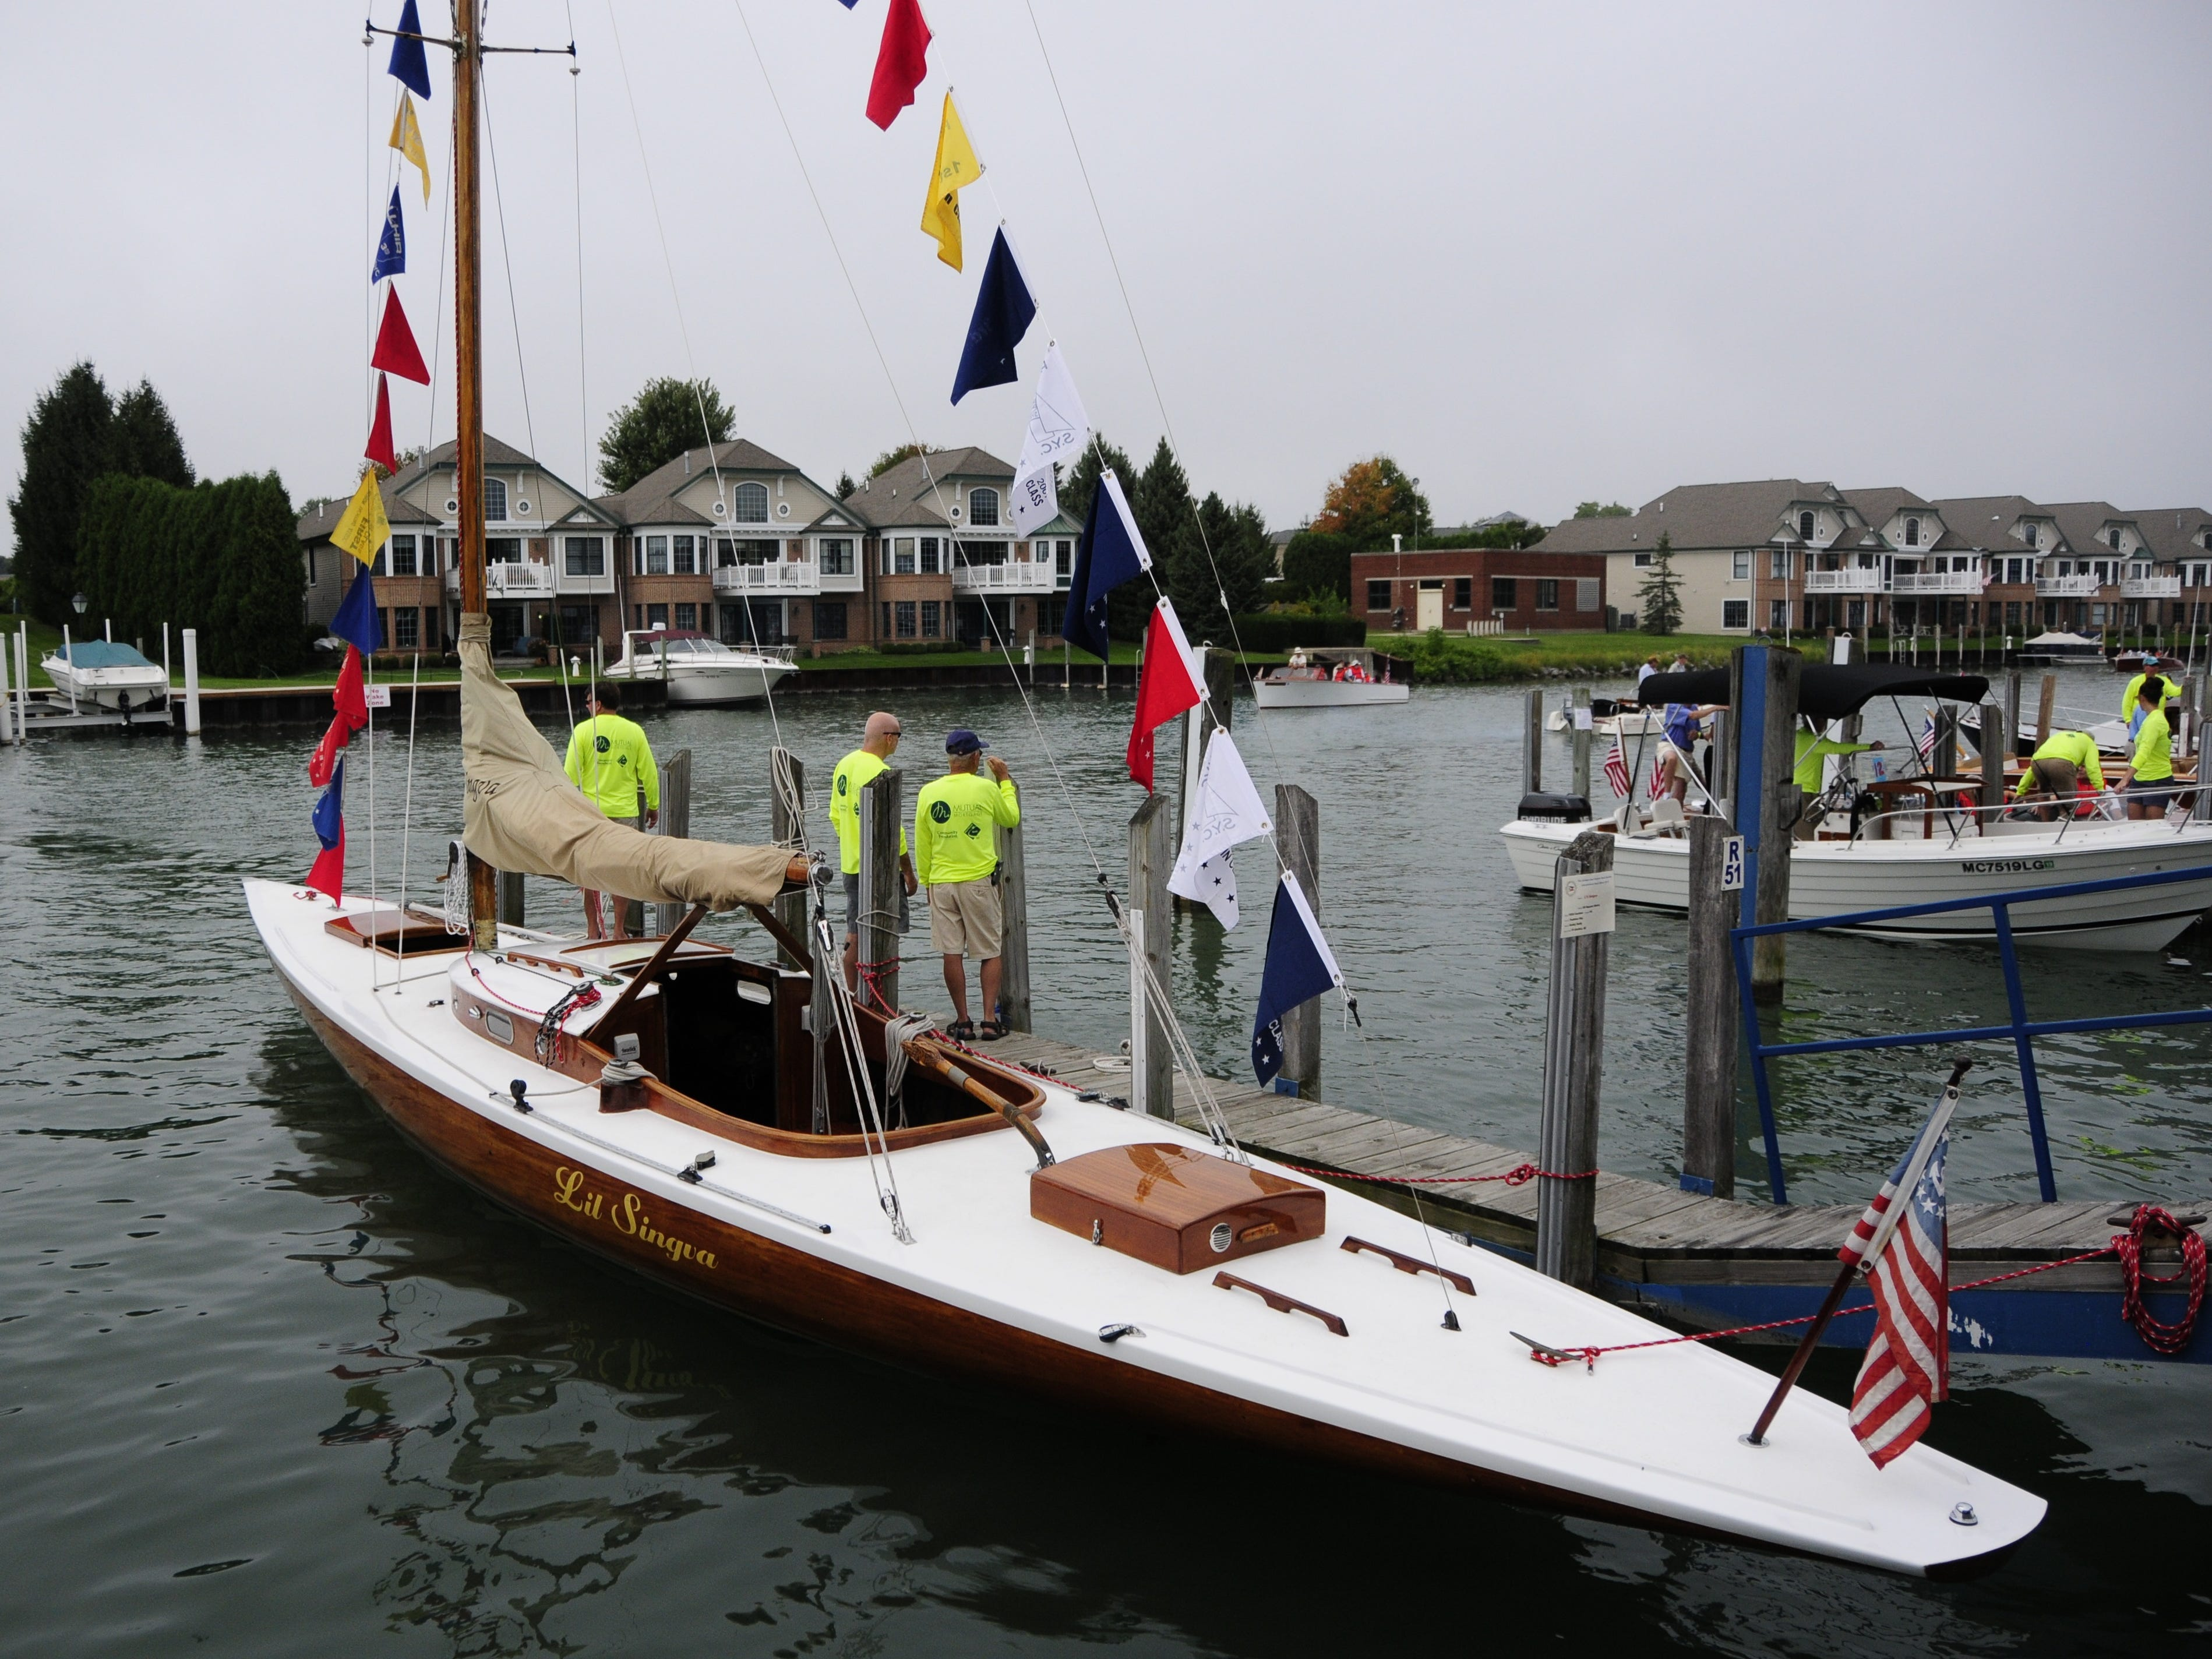 Kathy Duffy's L'il Singva was one of the few sailboats at the Antique and Classic Boat Society International Boat Show on Saturday, Sept. 15, 2018.